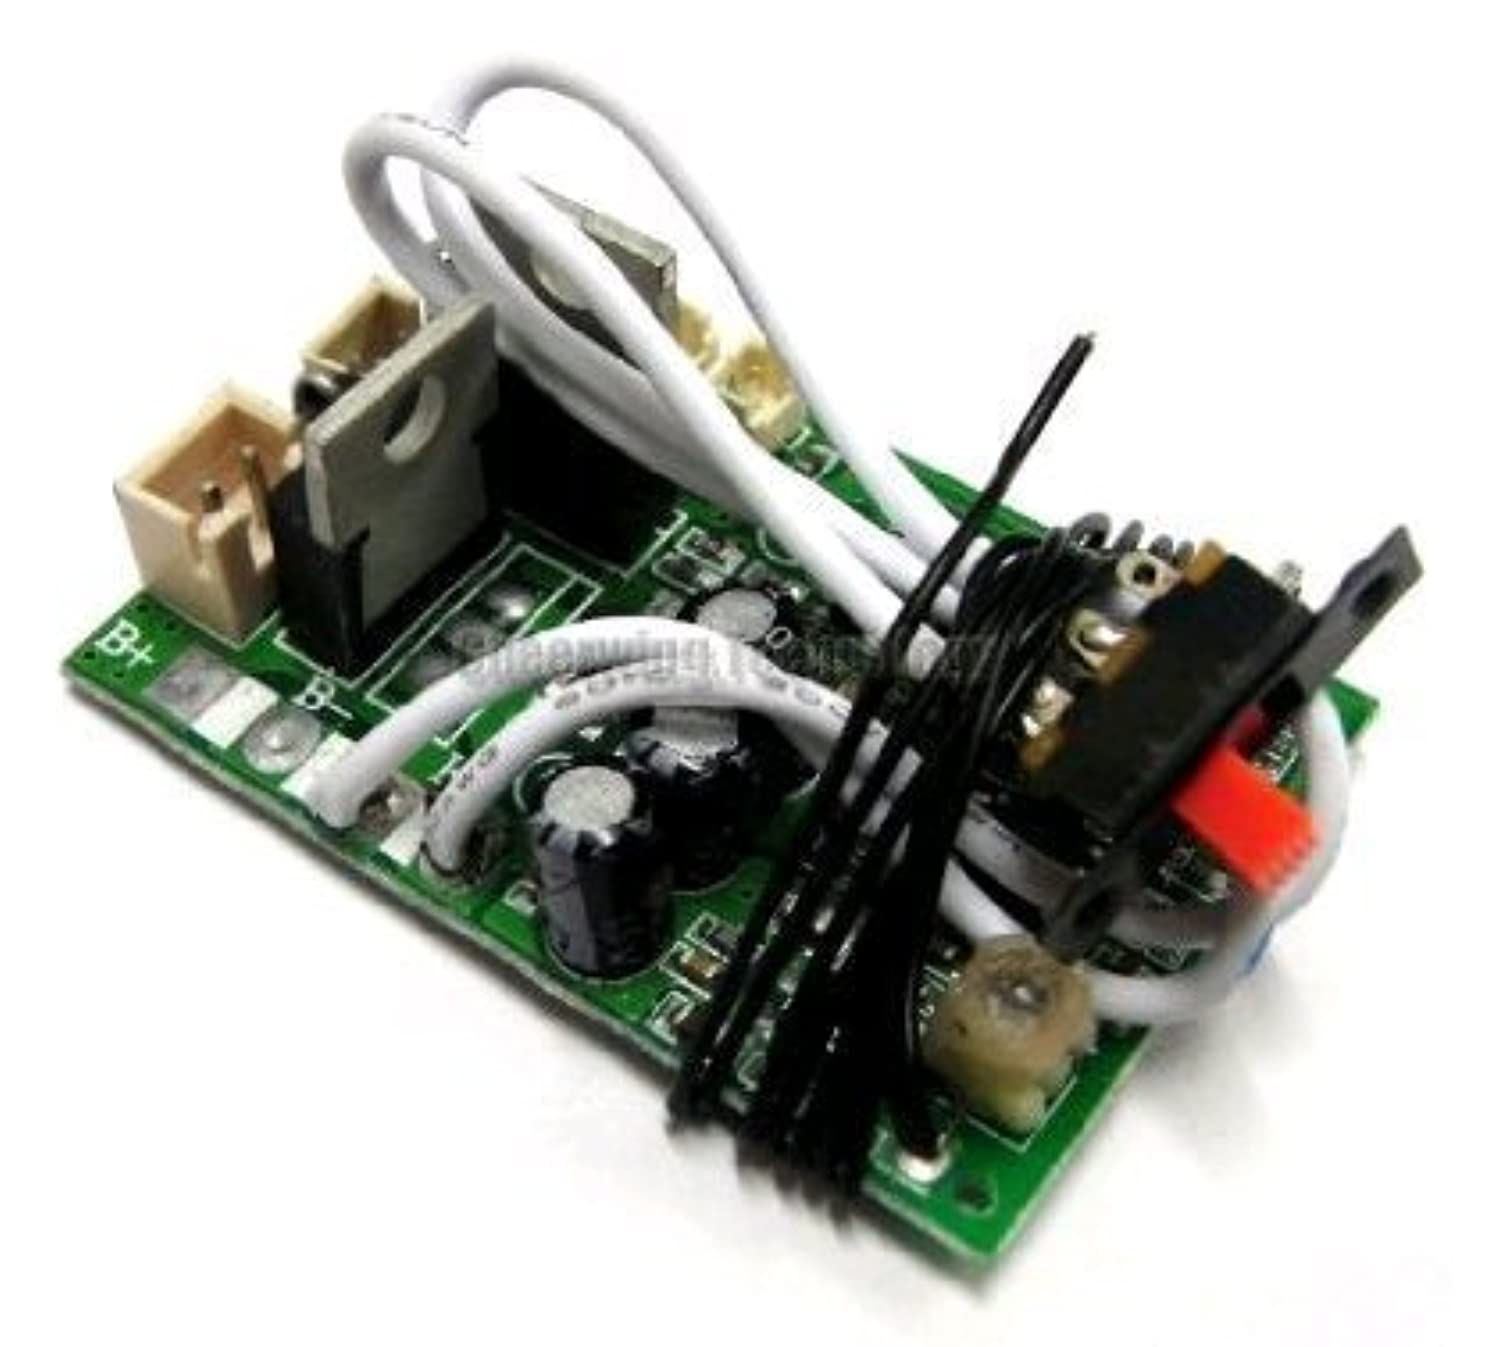 9104-20 27MHz PCB for Double Horse 9104 Helicopter by Double Horse [並行輸入品]